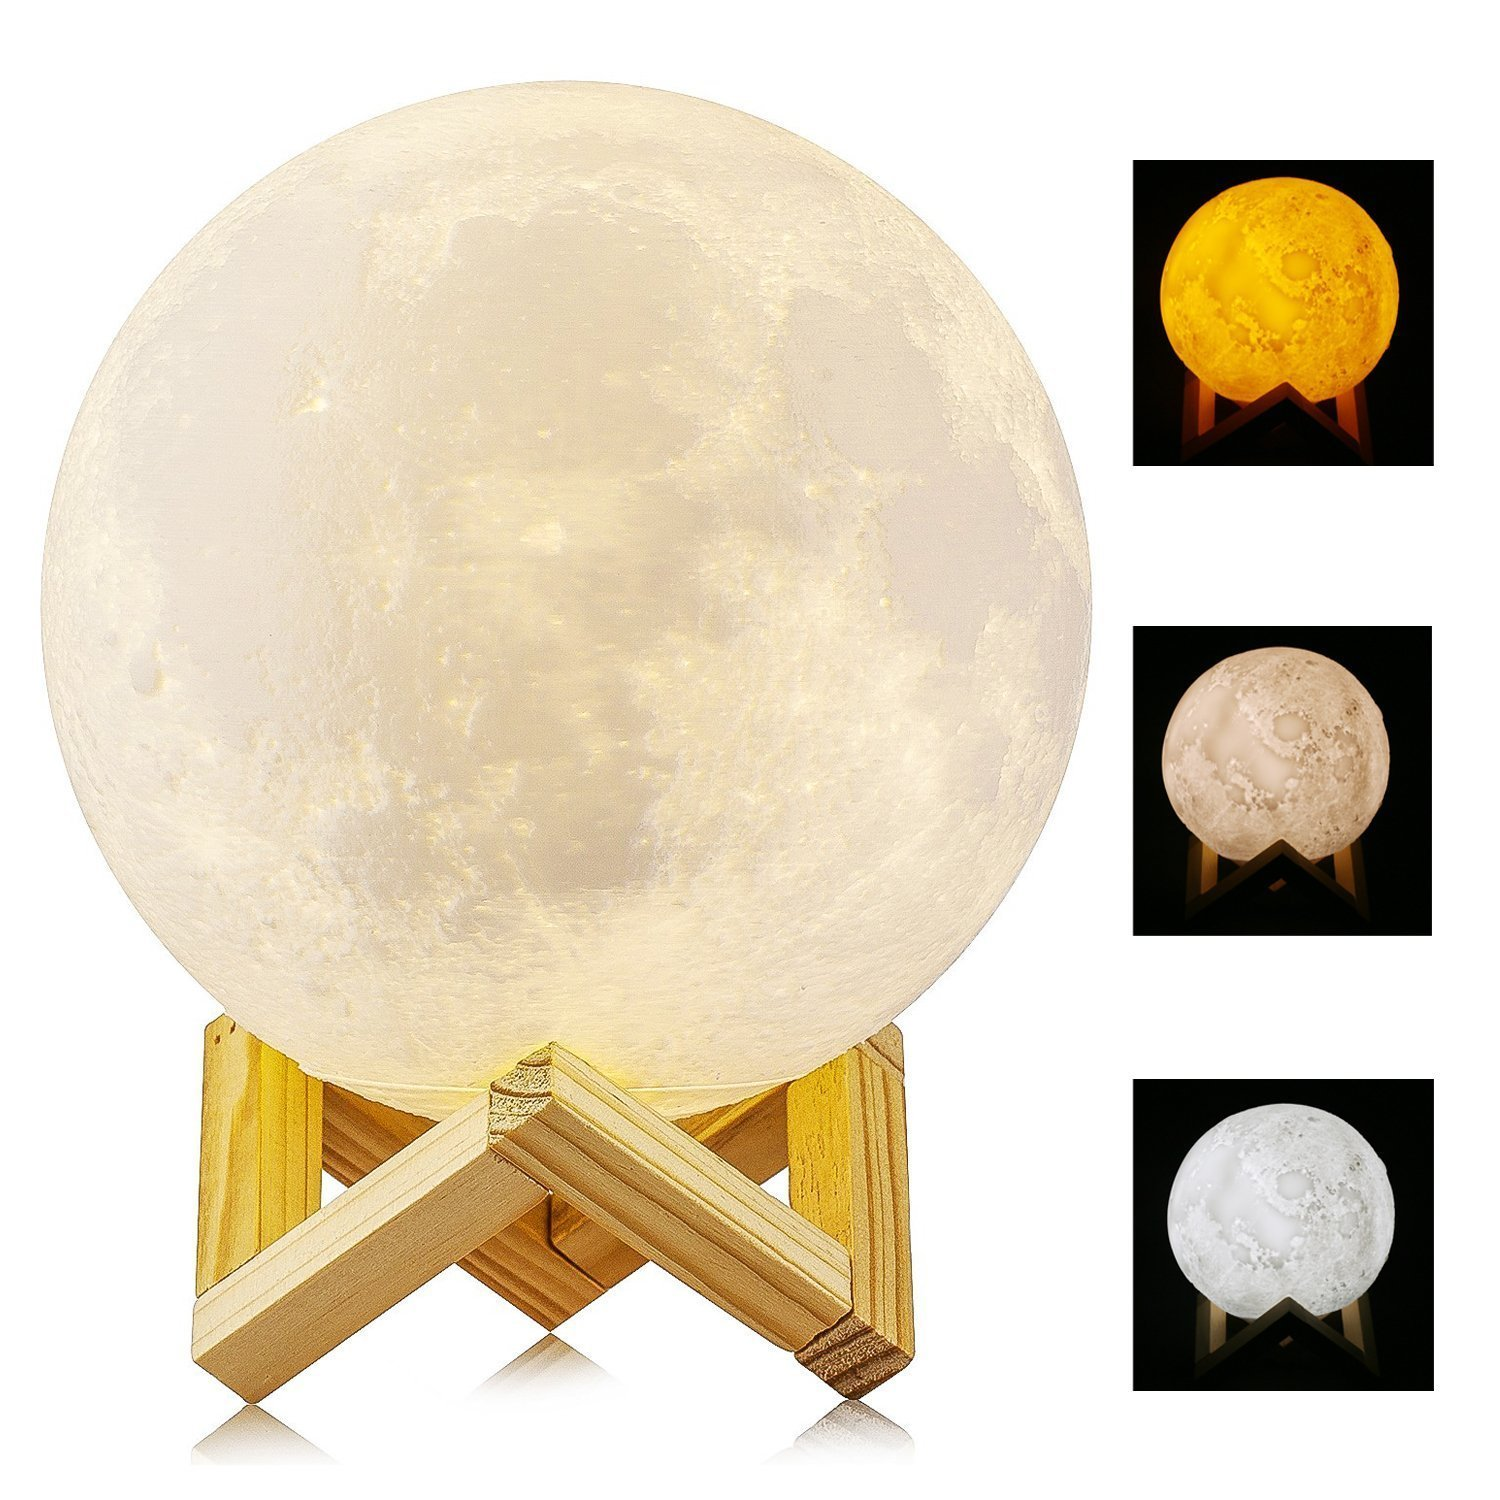 Moon Lamp, Wowlite 3D Printing Moonlight Lamp, Dimmable with USB Charging, Touch Control, Rechargeable 5.9 Inch Night Lamp Home Decorative Night Light for Kid Bedroom